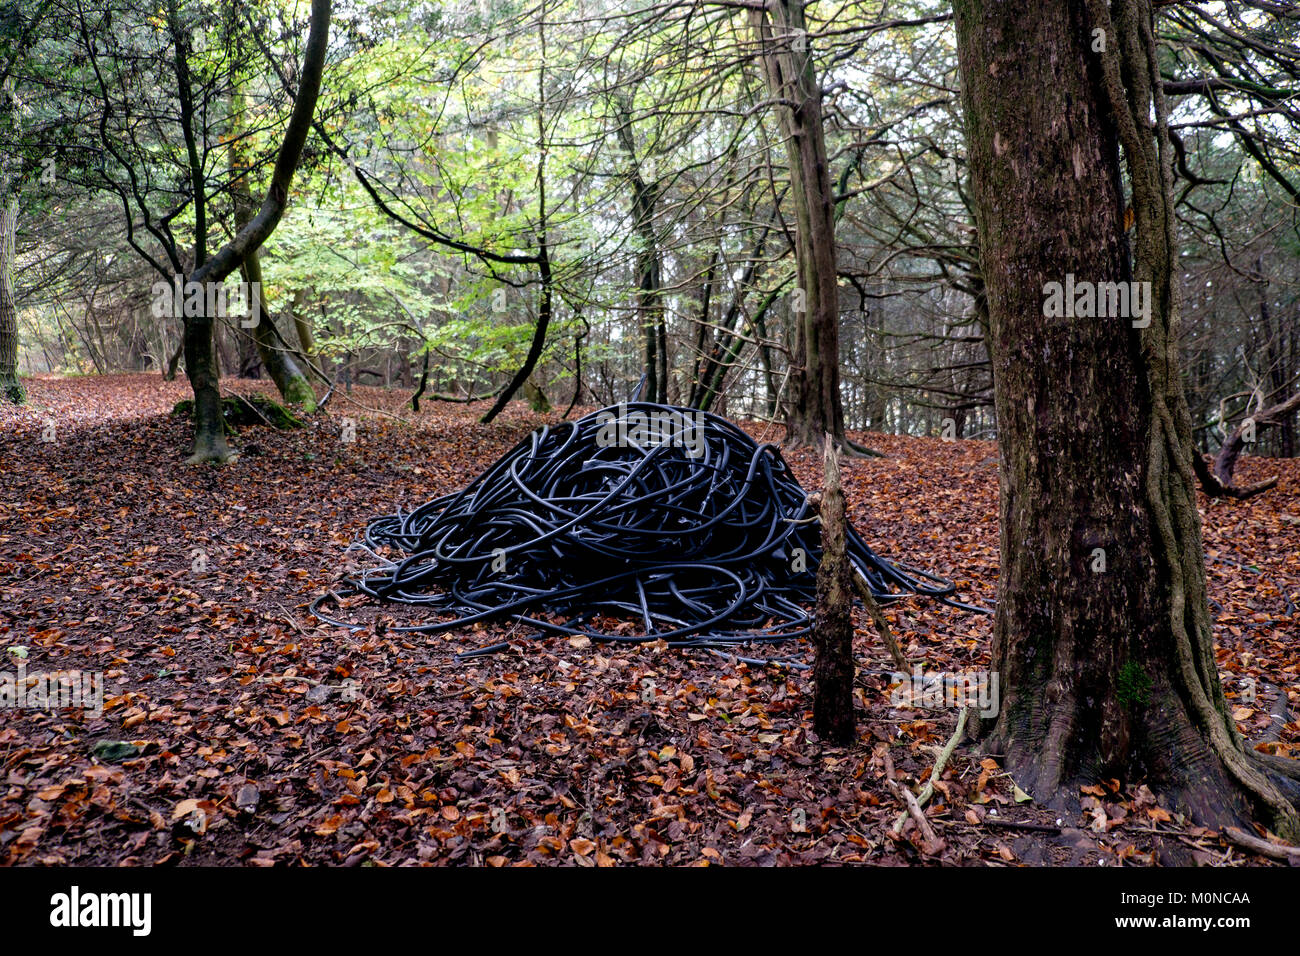 A pile of discarded black rubber cabling waster flytipped or dumped in woodland in the Hampshire countryside. - Stock Image